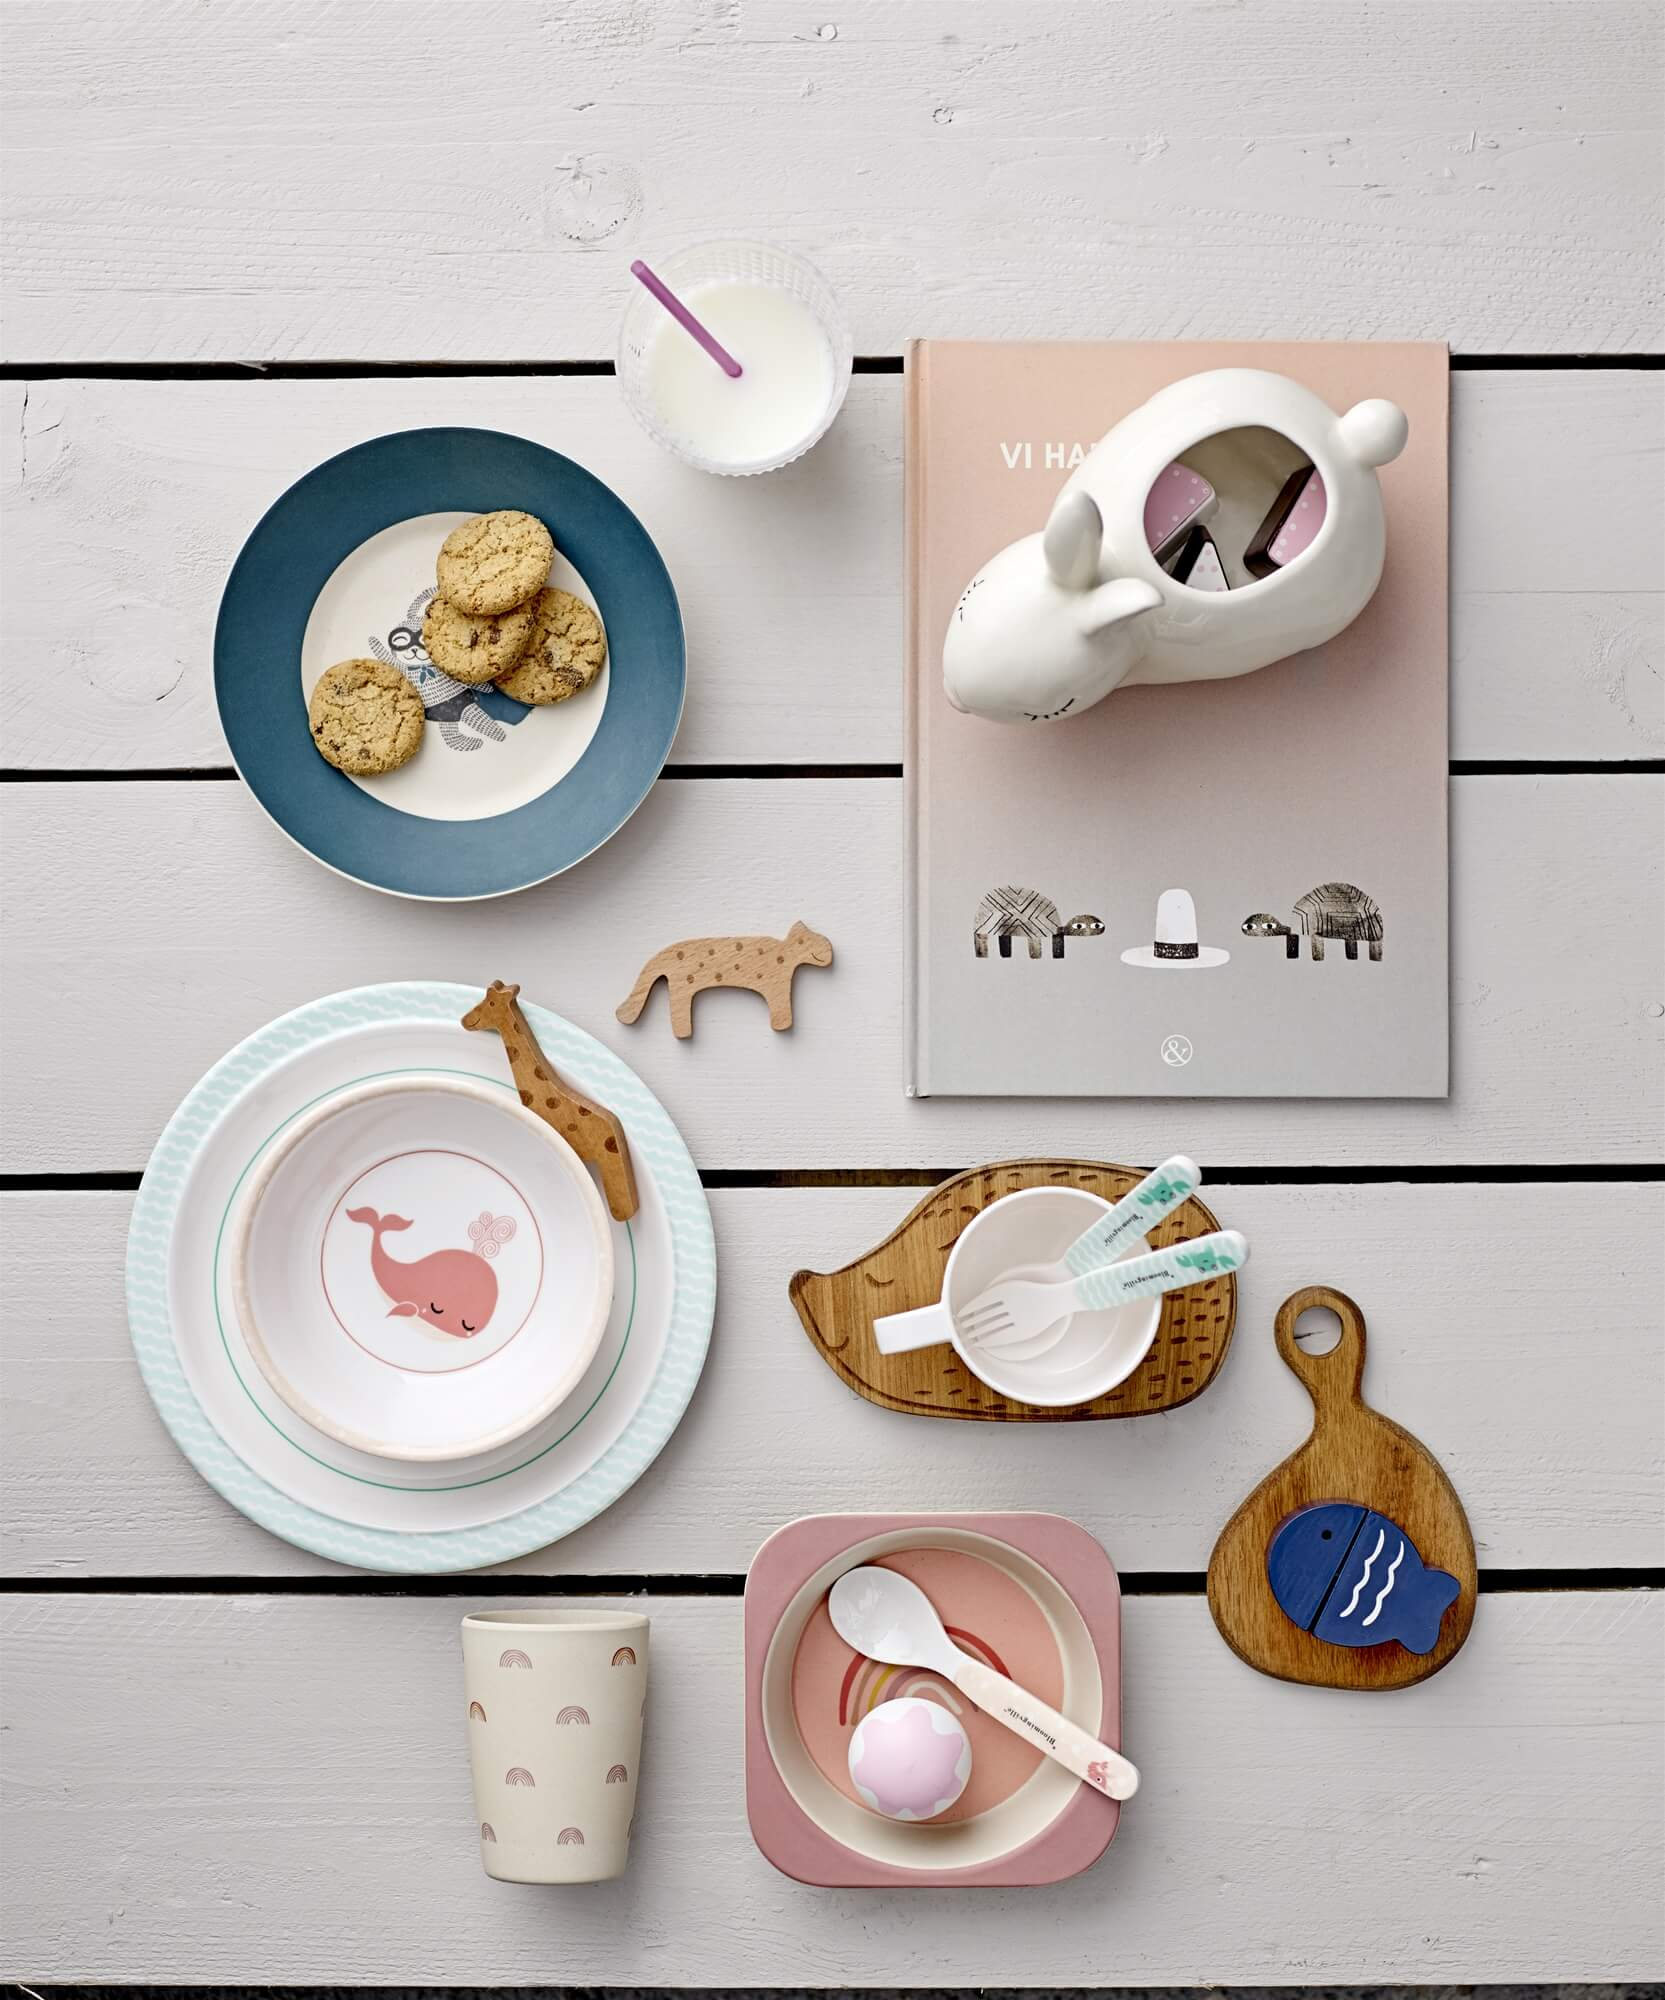 Ceramics with Cookies | The Mustcard